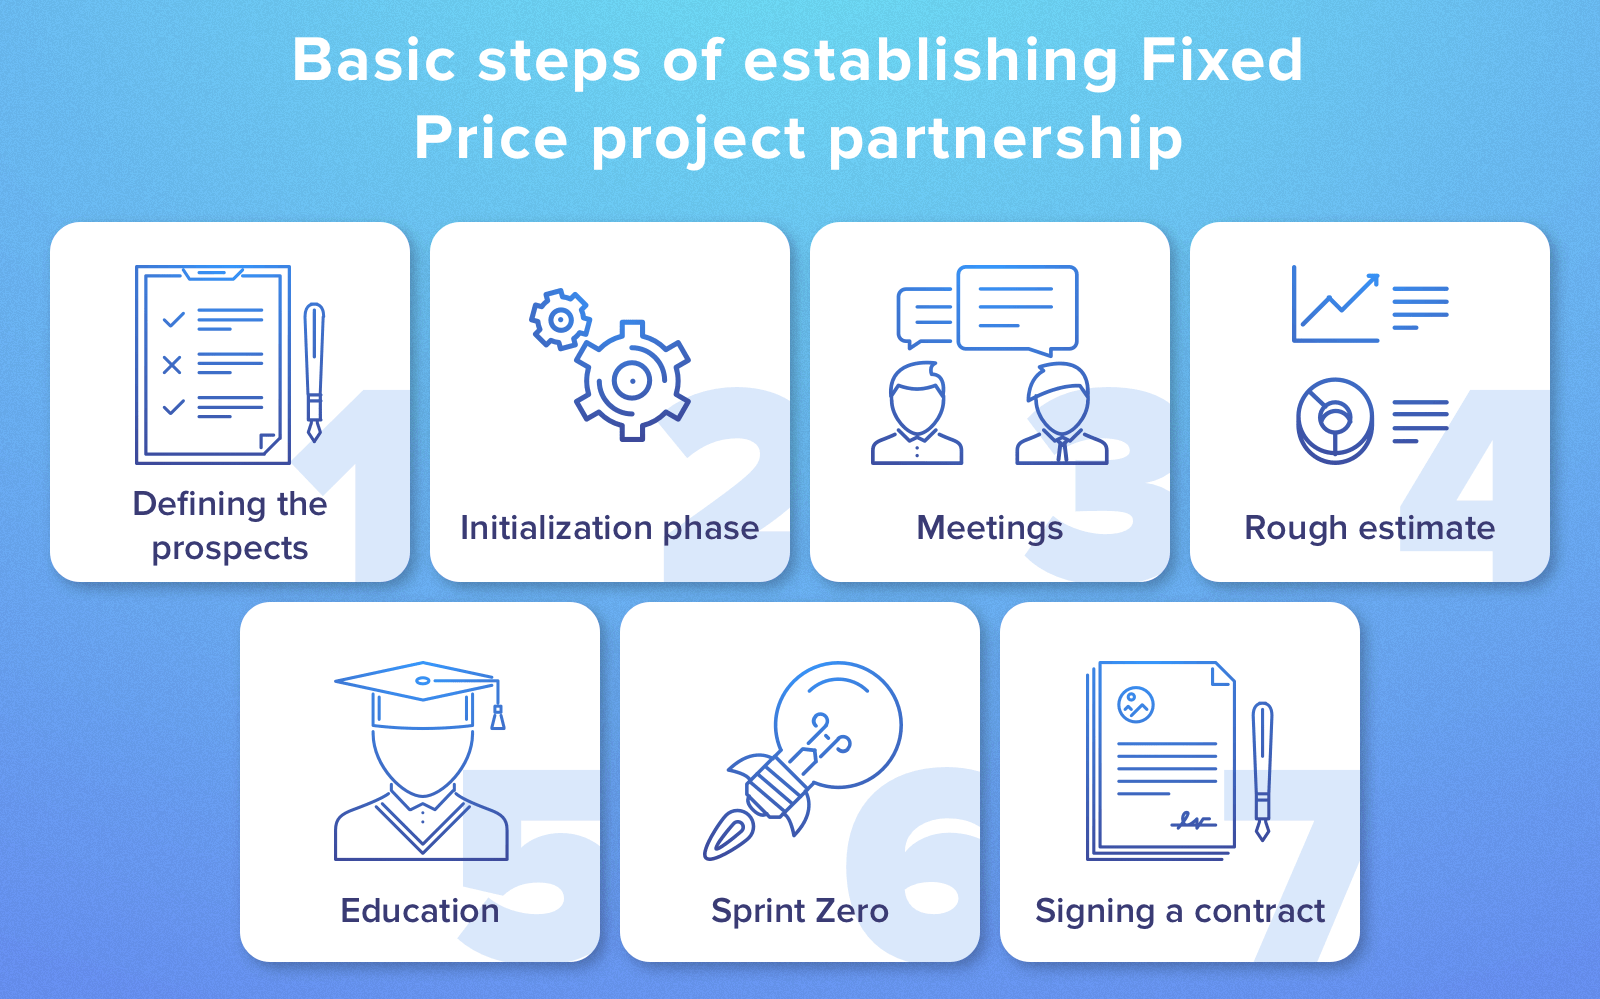 partnership at fixed price project contract